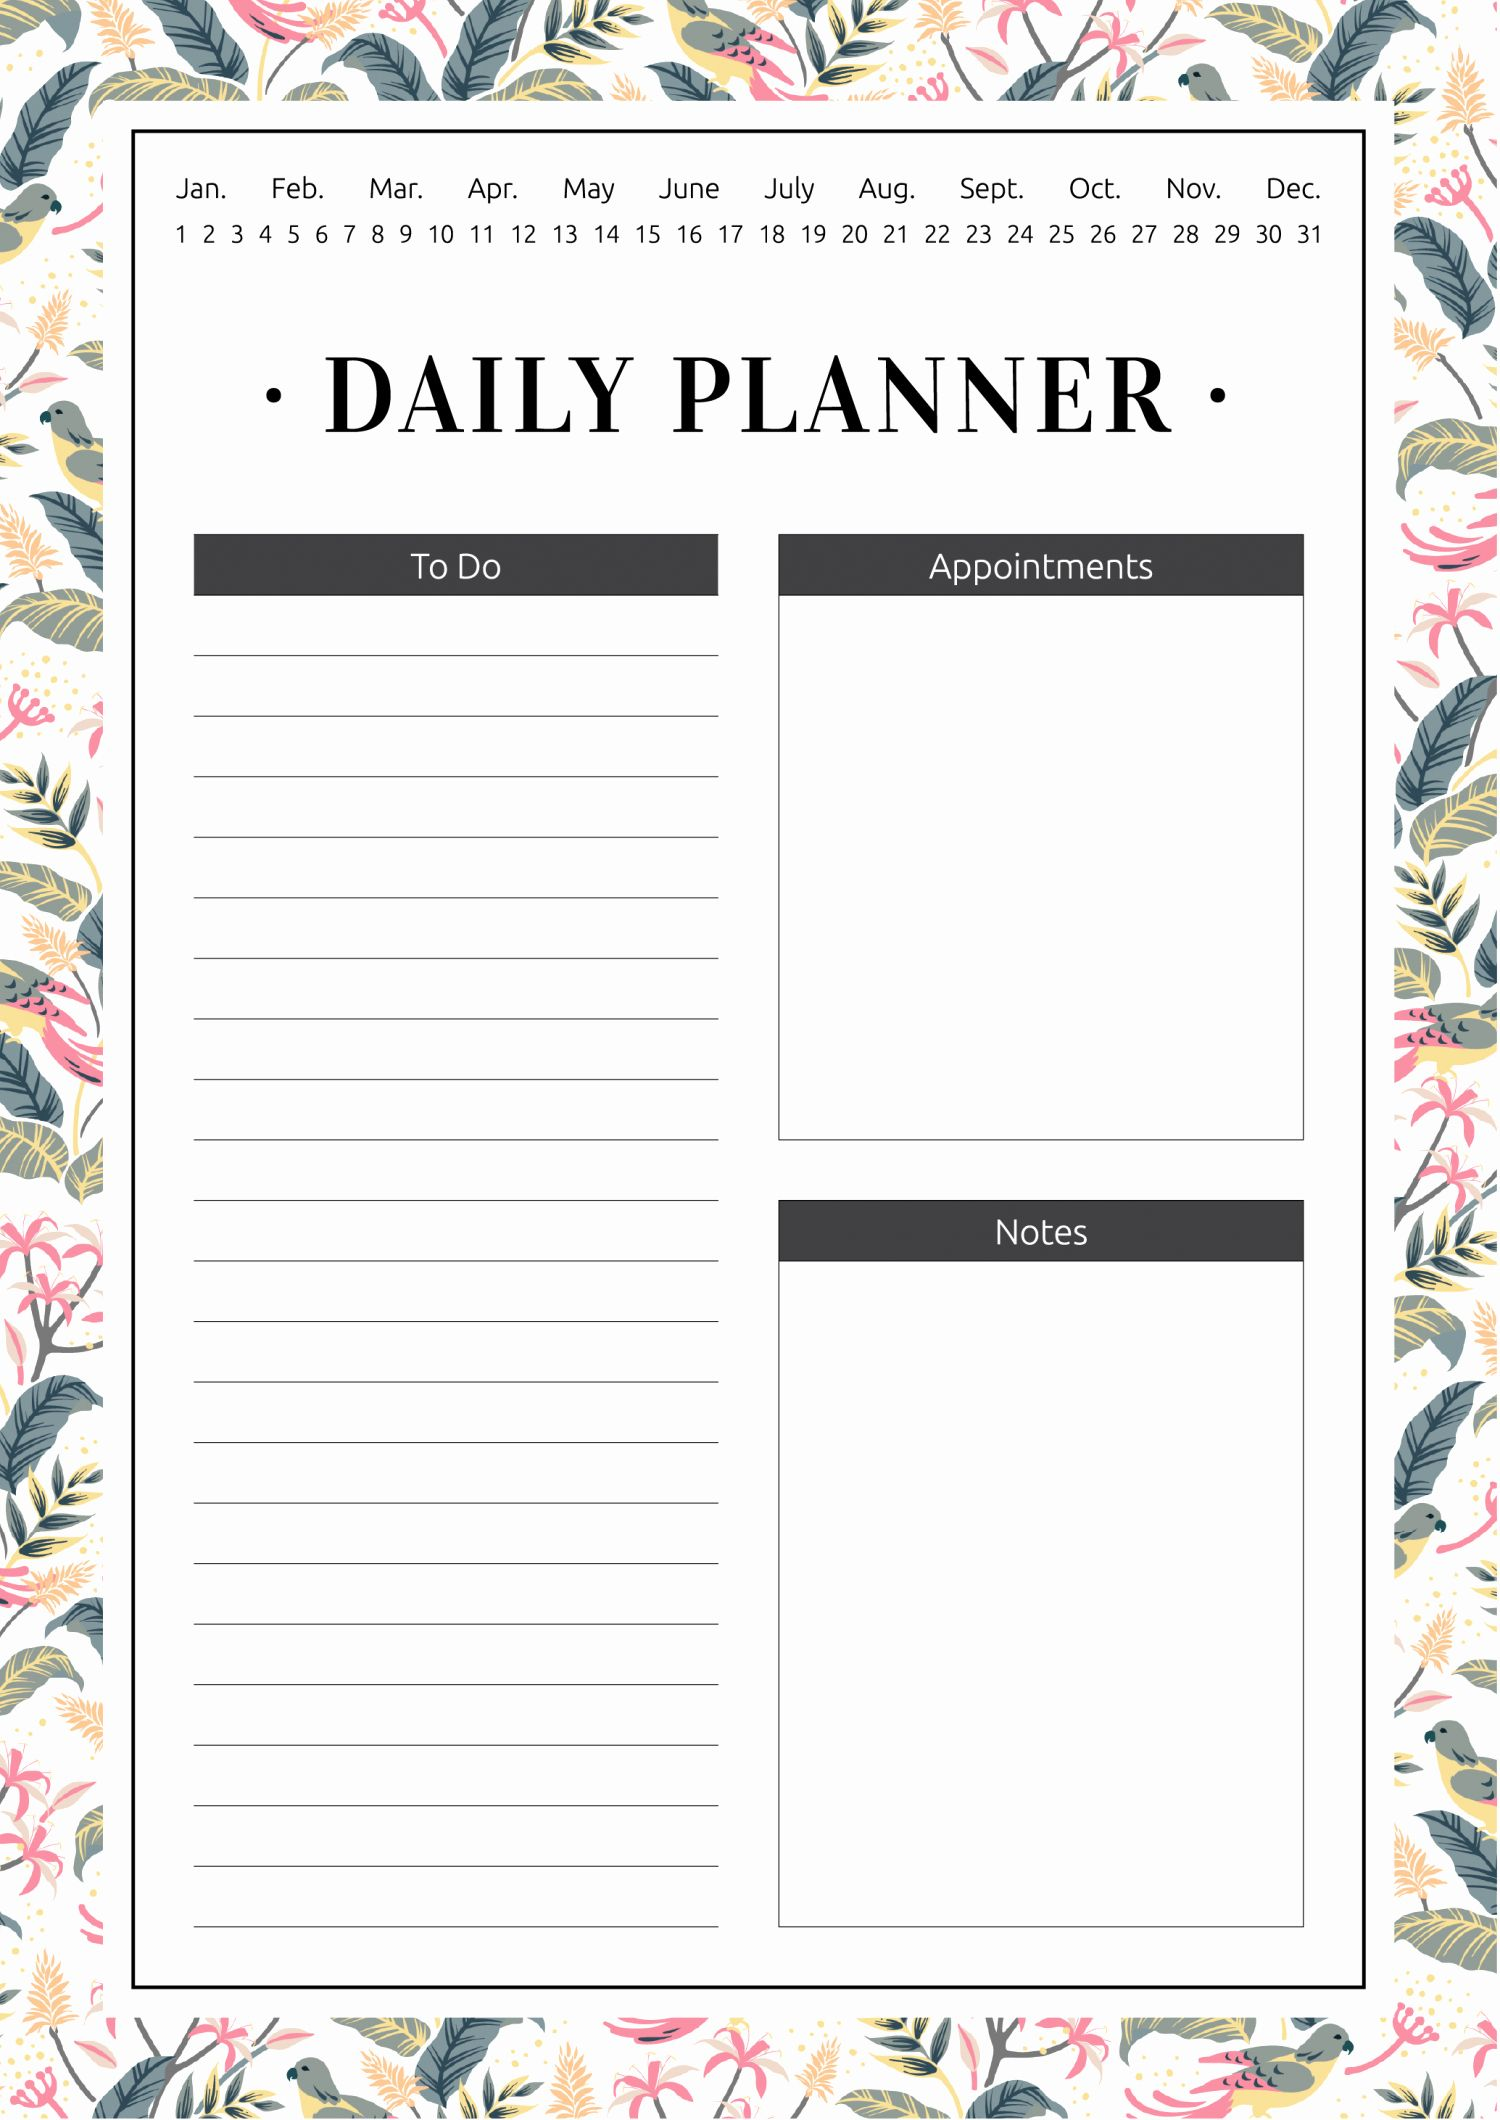 Daily Planner Pdf Free Download